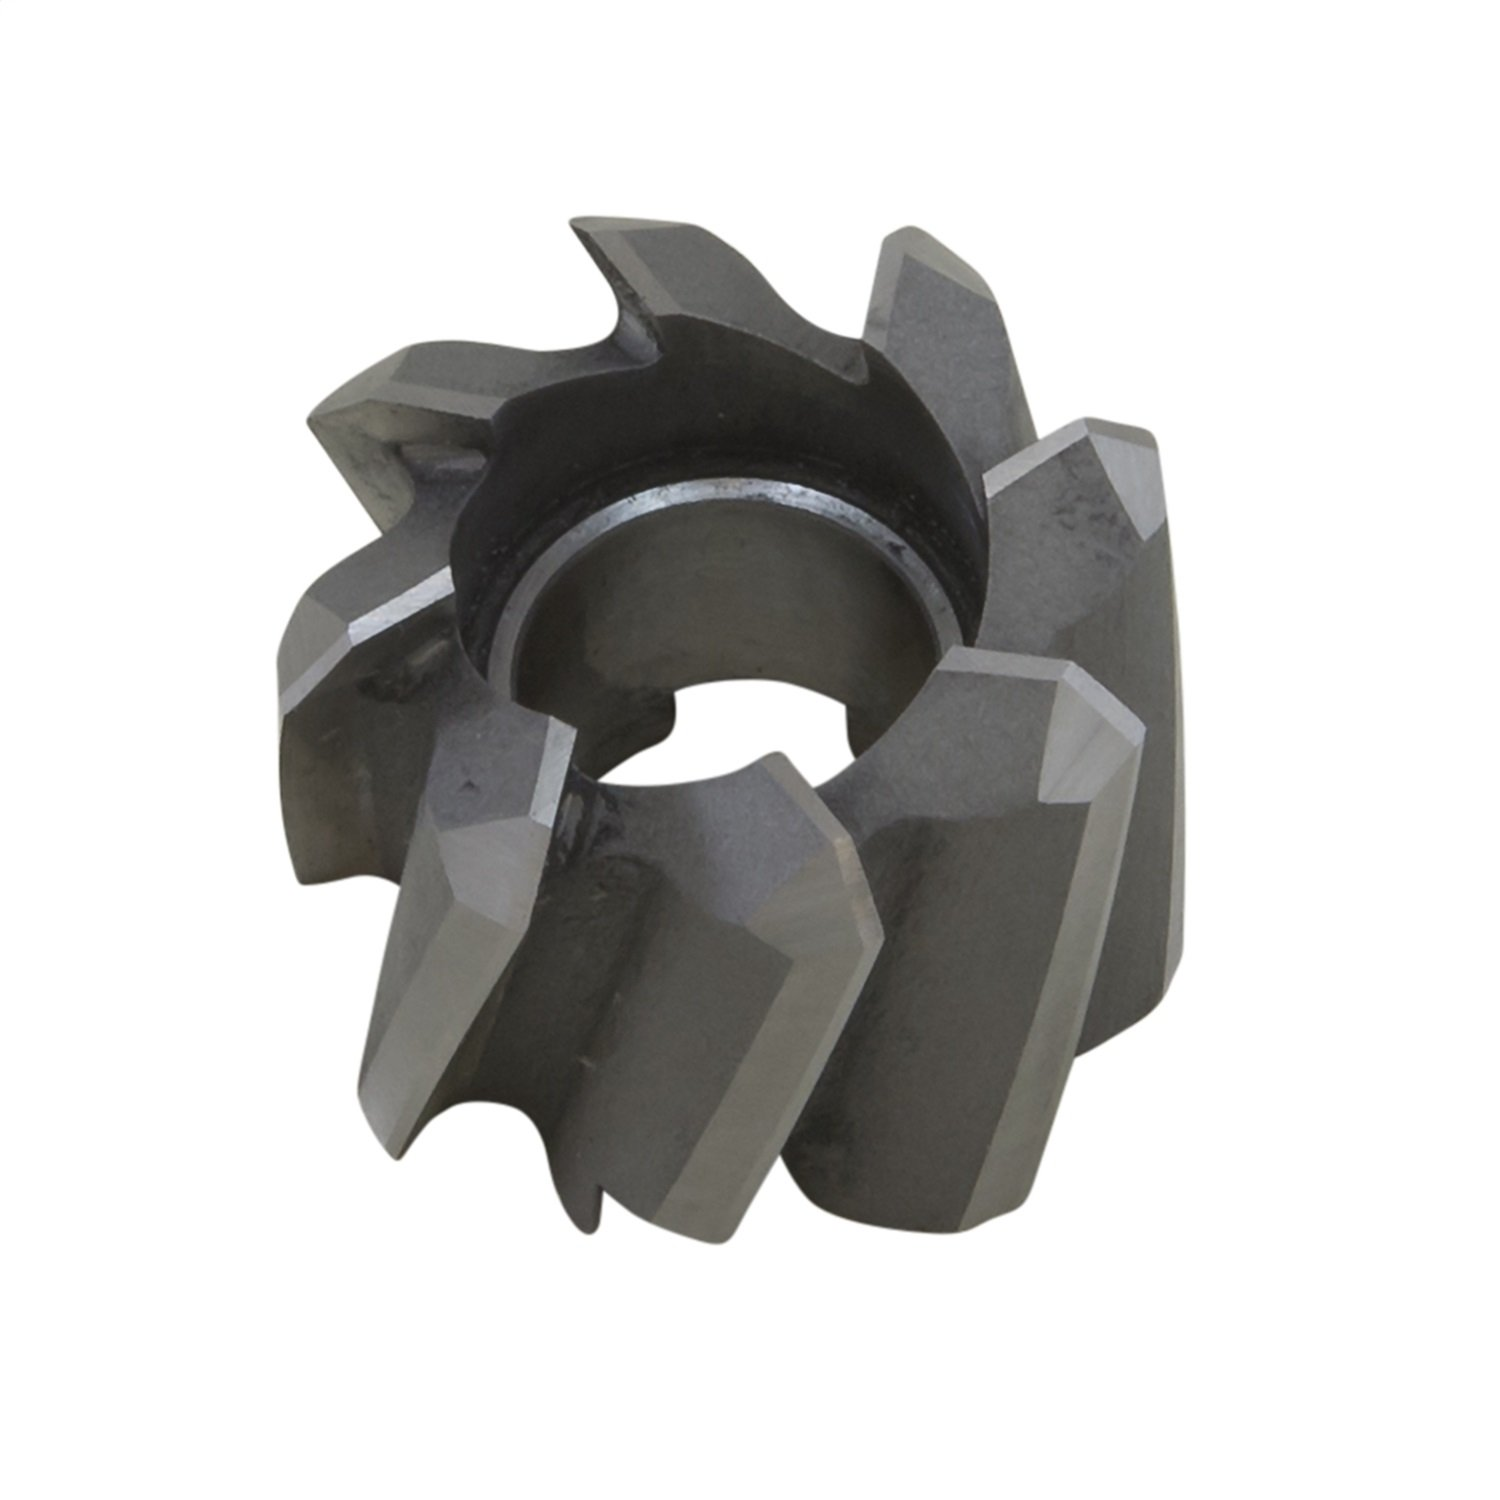 Yukon (YT H28) Replacement Spindle Boring Tool Cutter for Dana 80 Differential